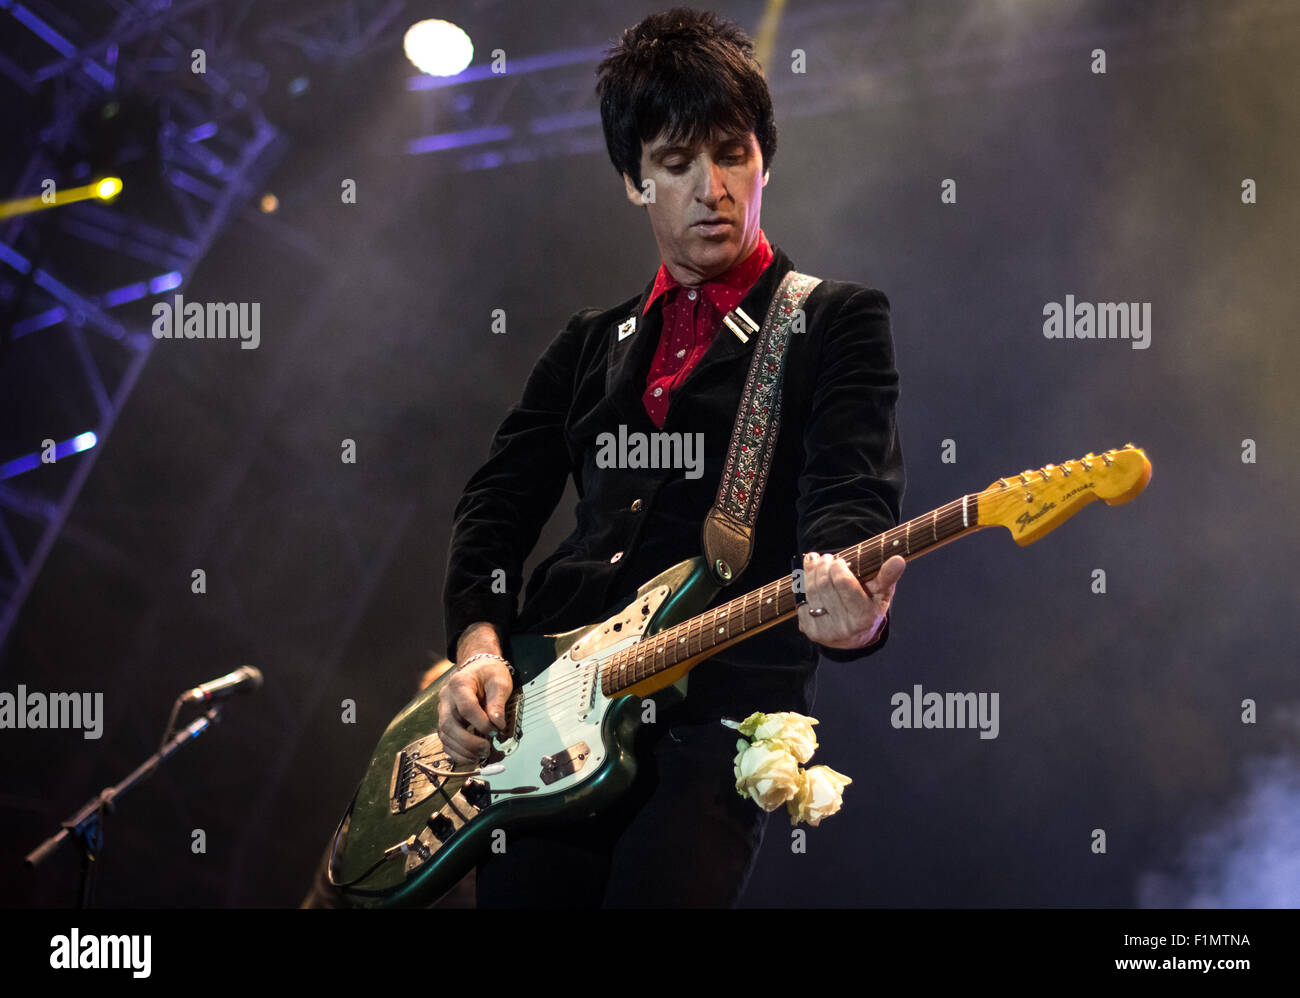 Johnny Marr playing guitar at Victorious Festival 2015. - Stock Image